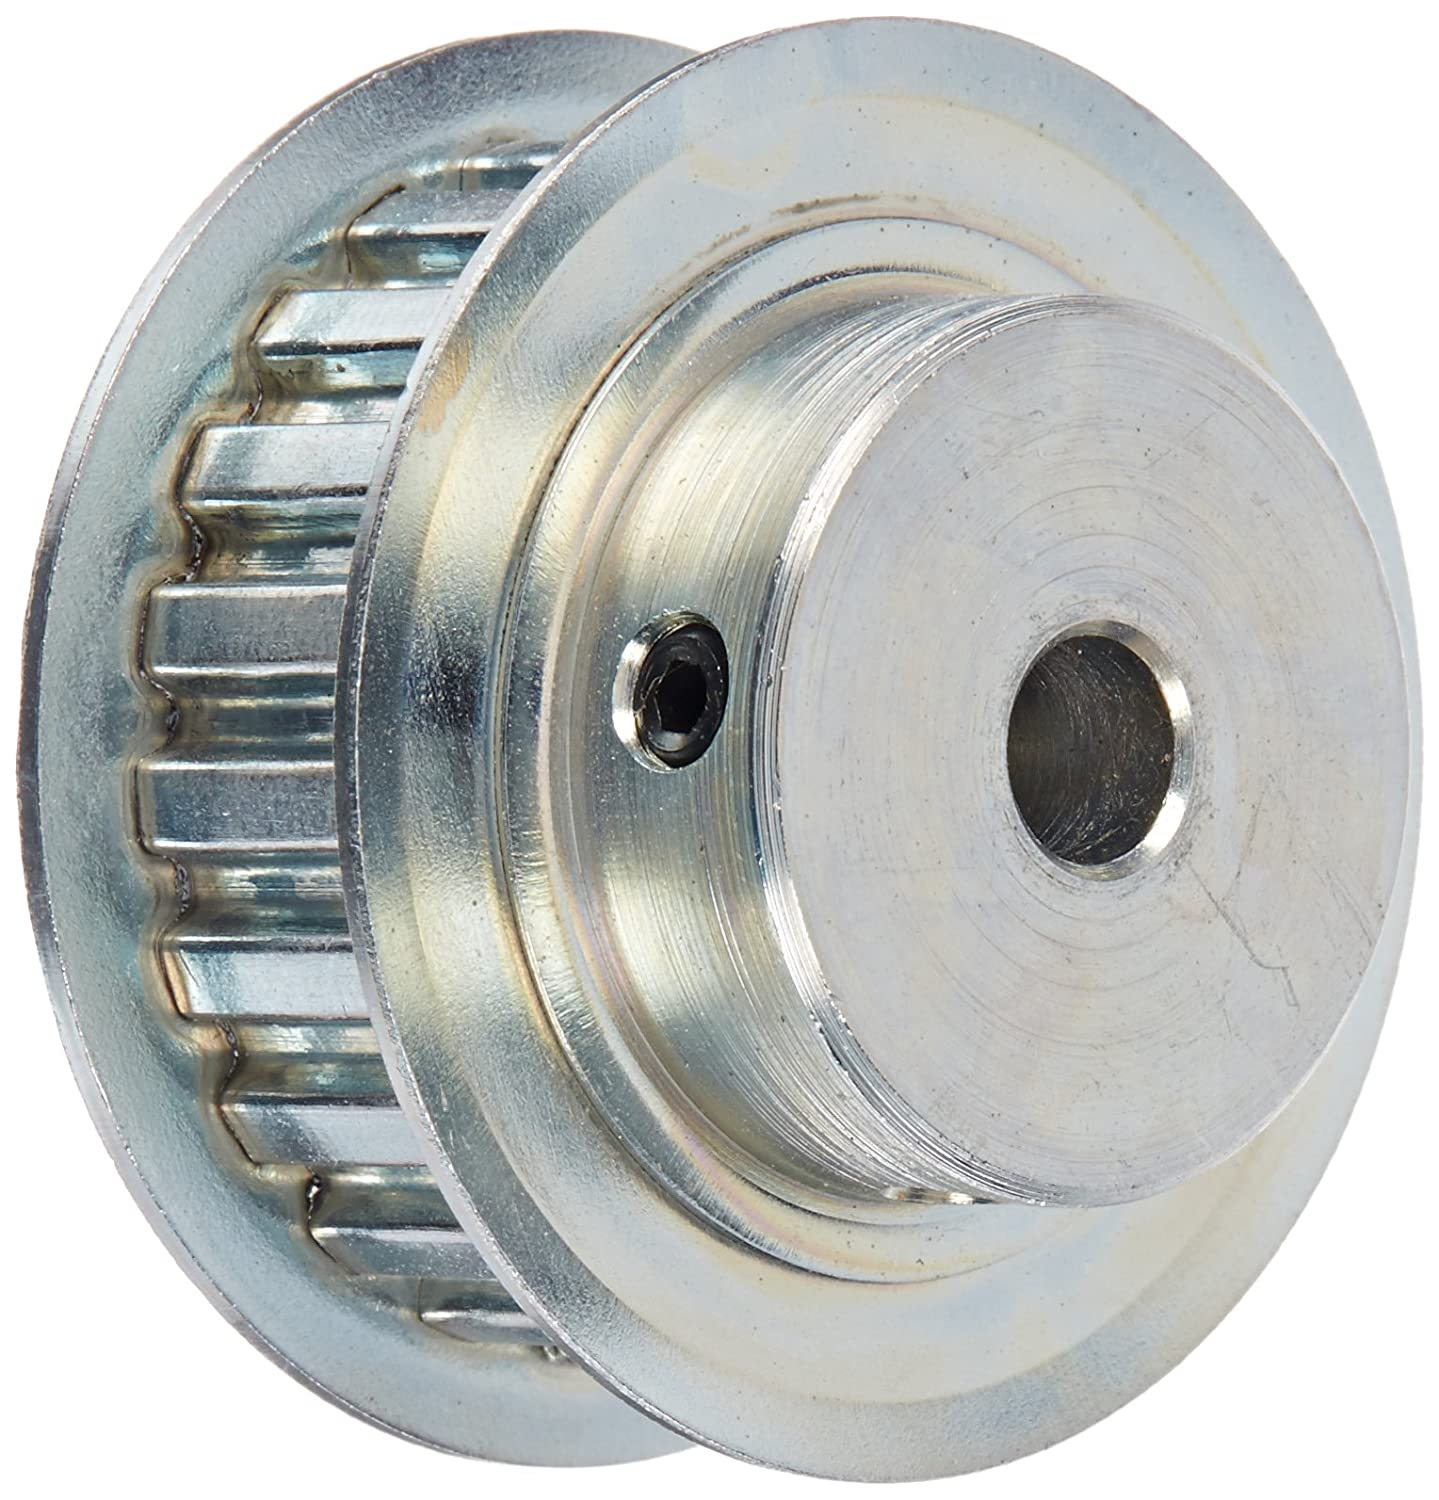 Gates PB16XL037 PowerGrip Steel Timing Pulley 1.019 Pitch Diameter 1//5 Pitch 1//4 to 3//8 Bore Range 16 Groove for 1//4 and 3//8 Width Belt